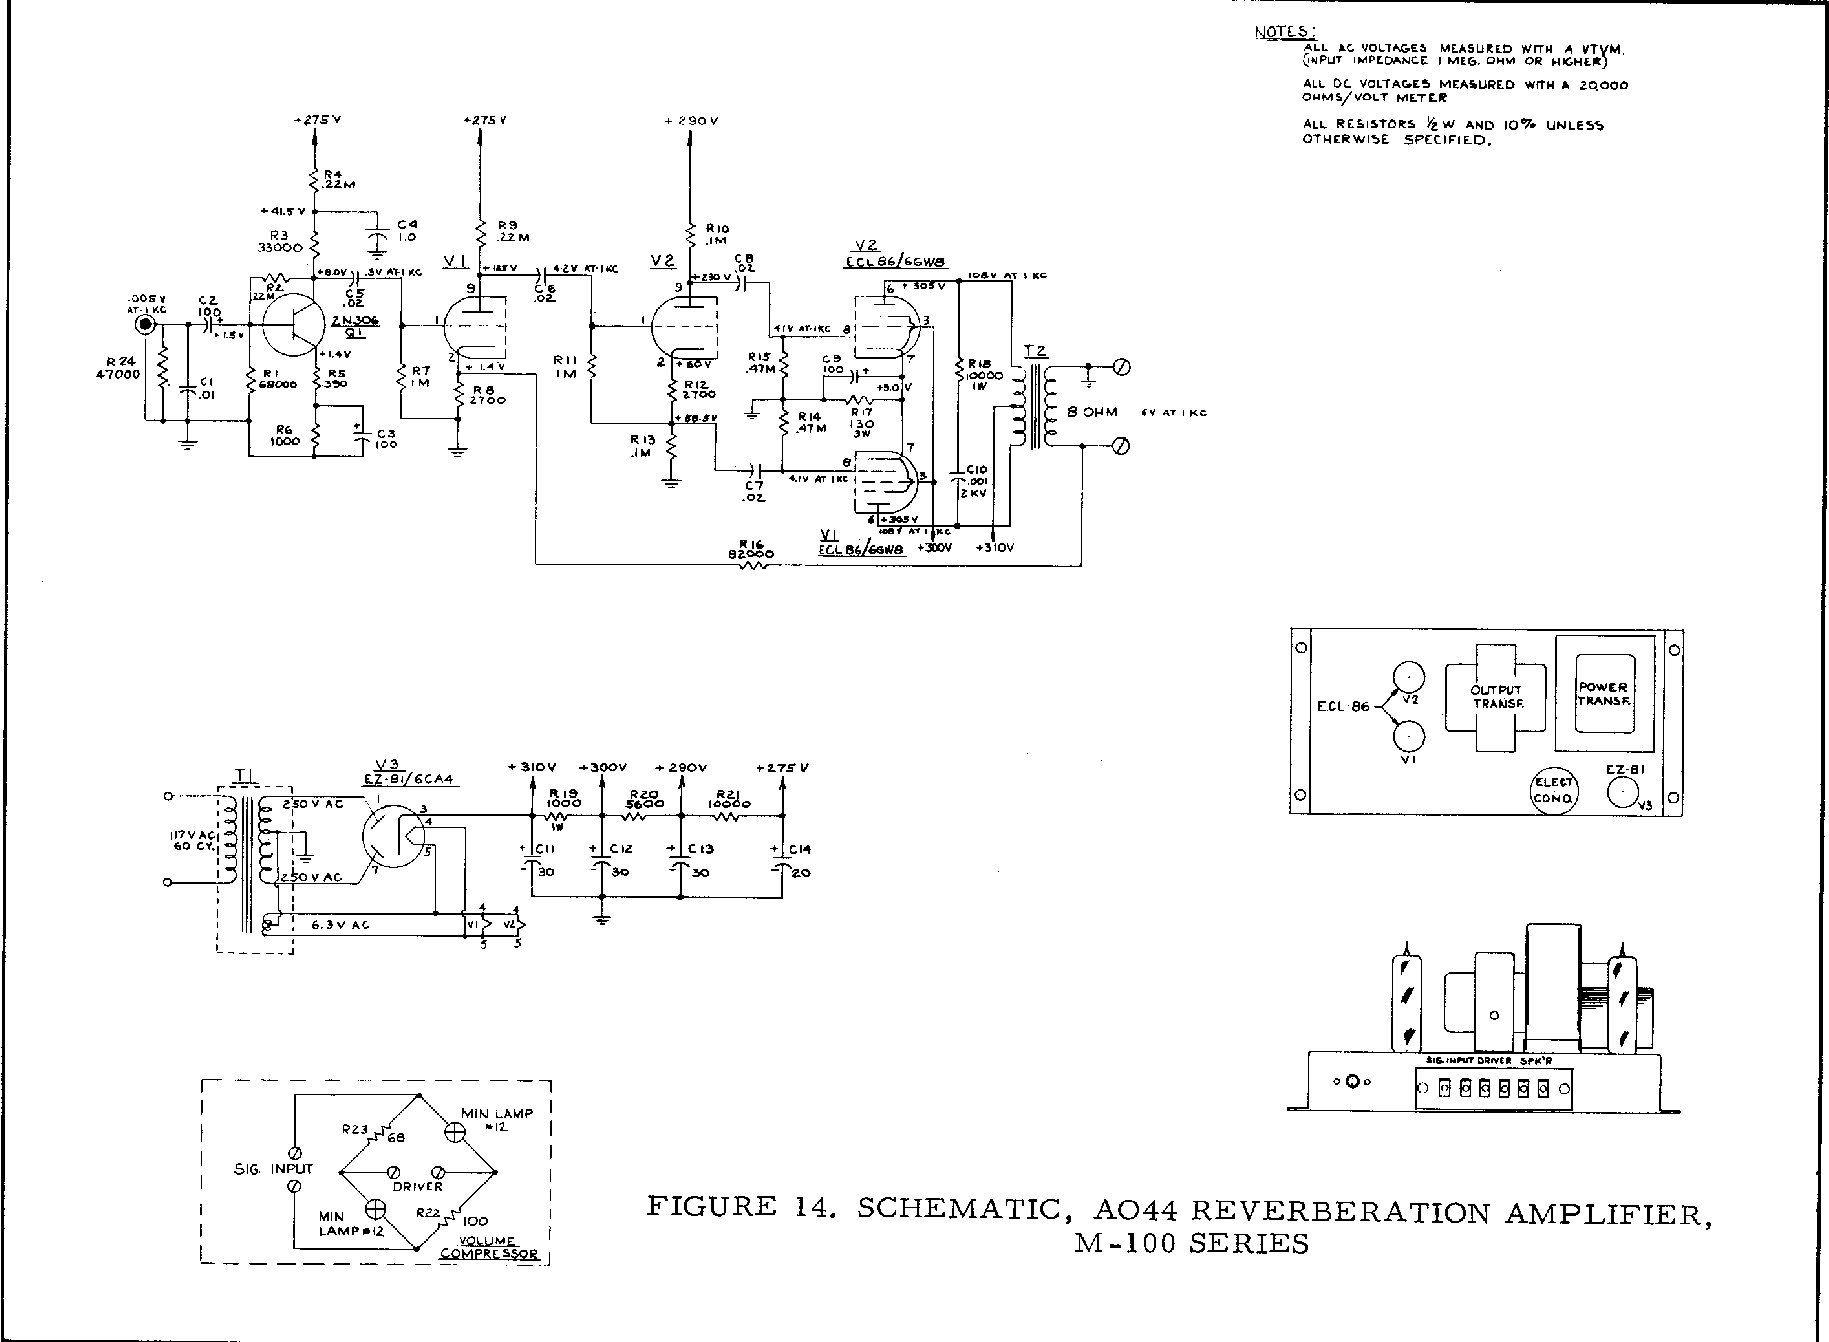 L100 Wiring Diagram Data Schematics John Deere L120 Carburetor Hammond Here And Elsewhere On The Net Rh Captain Foldback Com Basic Electrical Diagrams 110 Garden Tractor